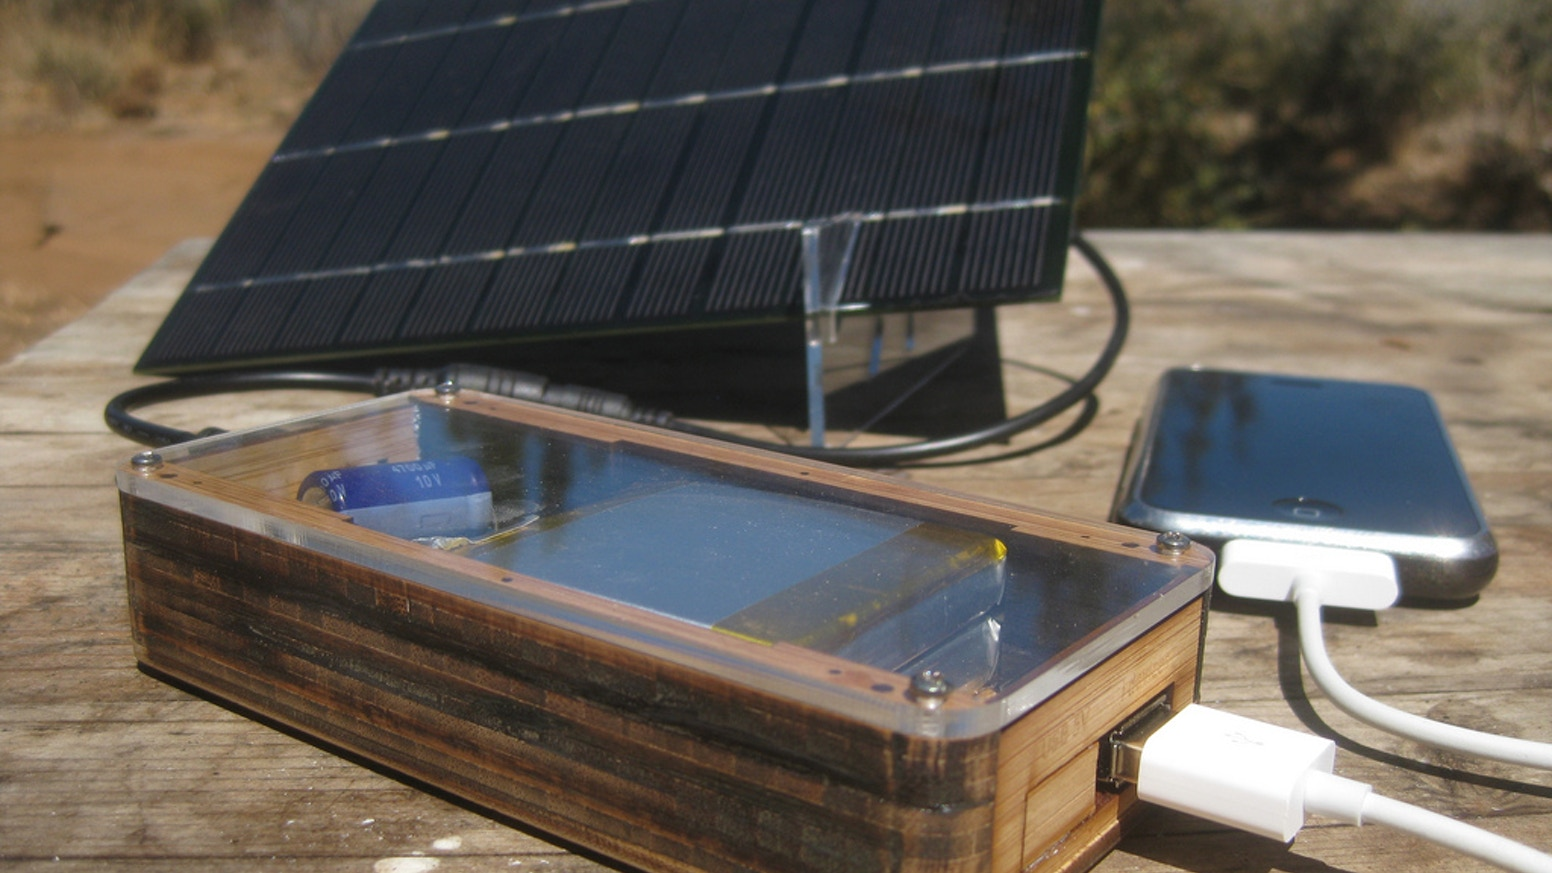 Bootstrapsolar Portable Power Pack Kit By Ryo Chijiiwa Kickstarter 6v Solar Battery Charger Circuit Electronic Projects Want To Your Smart Phone Tablet Raspberry Pi Or Arduino Project With